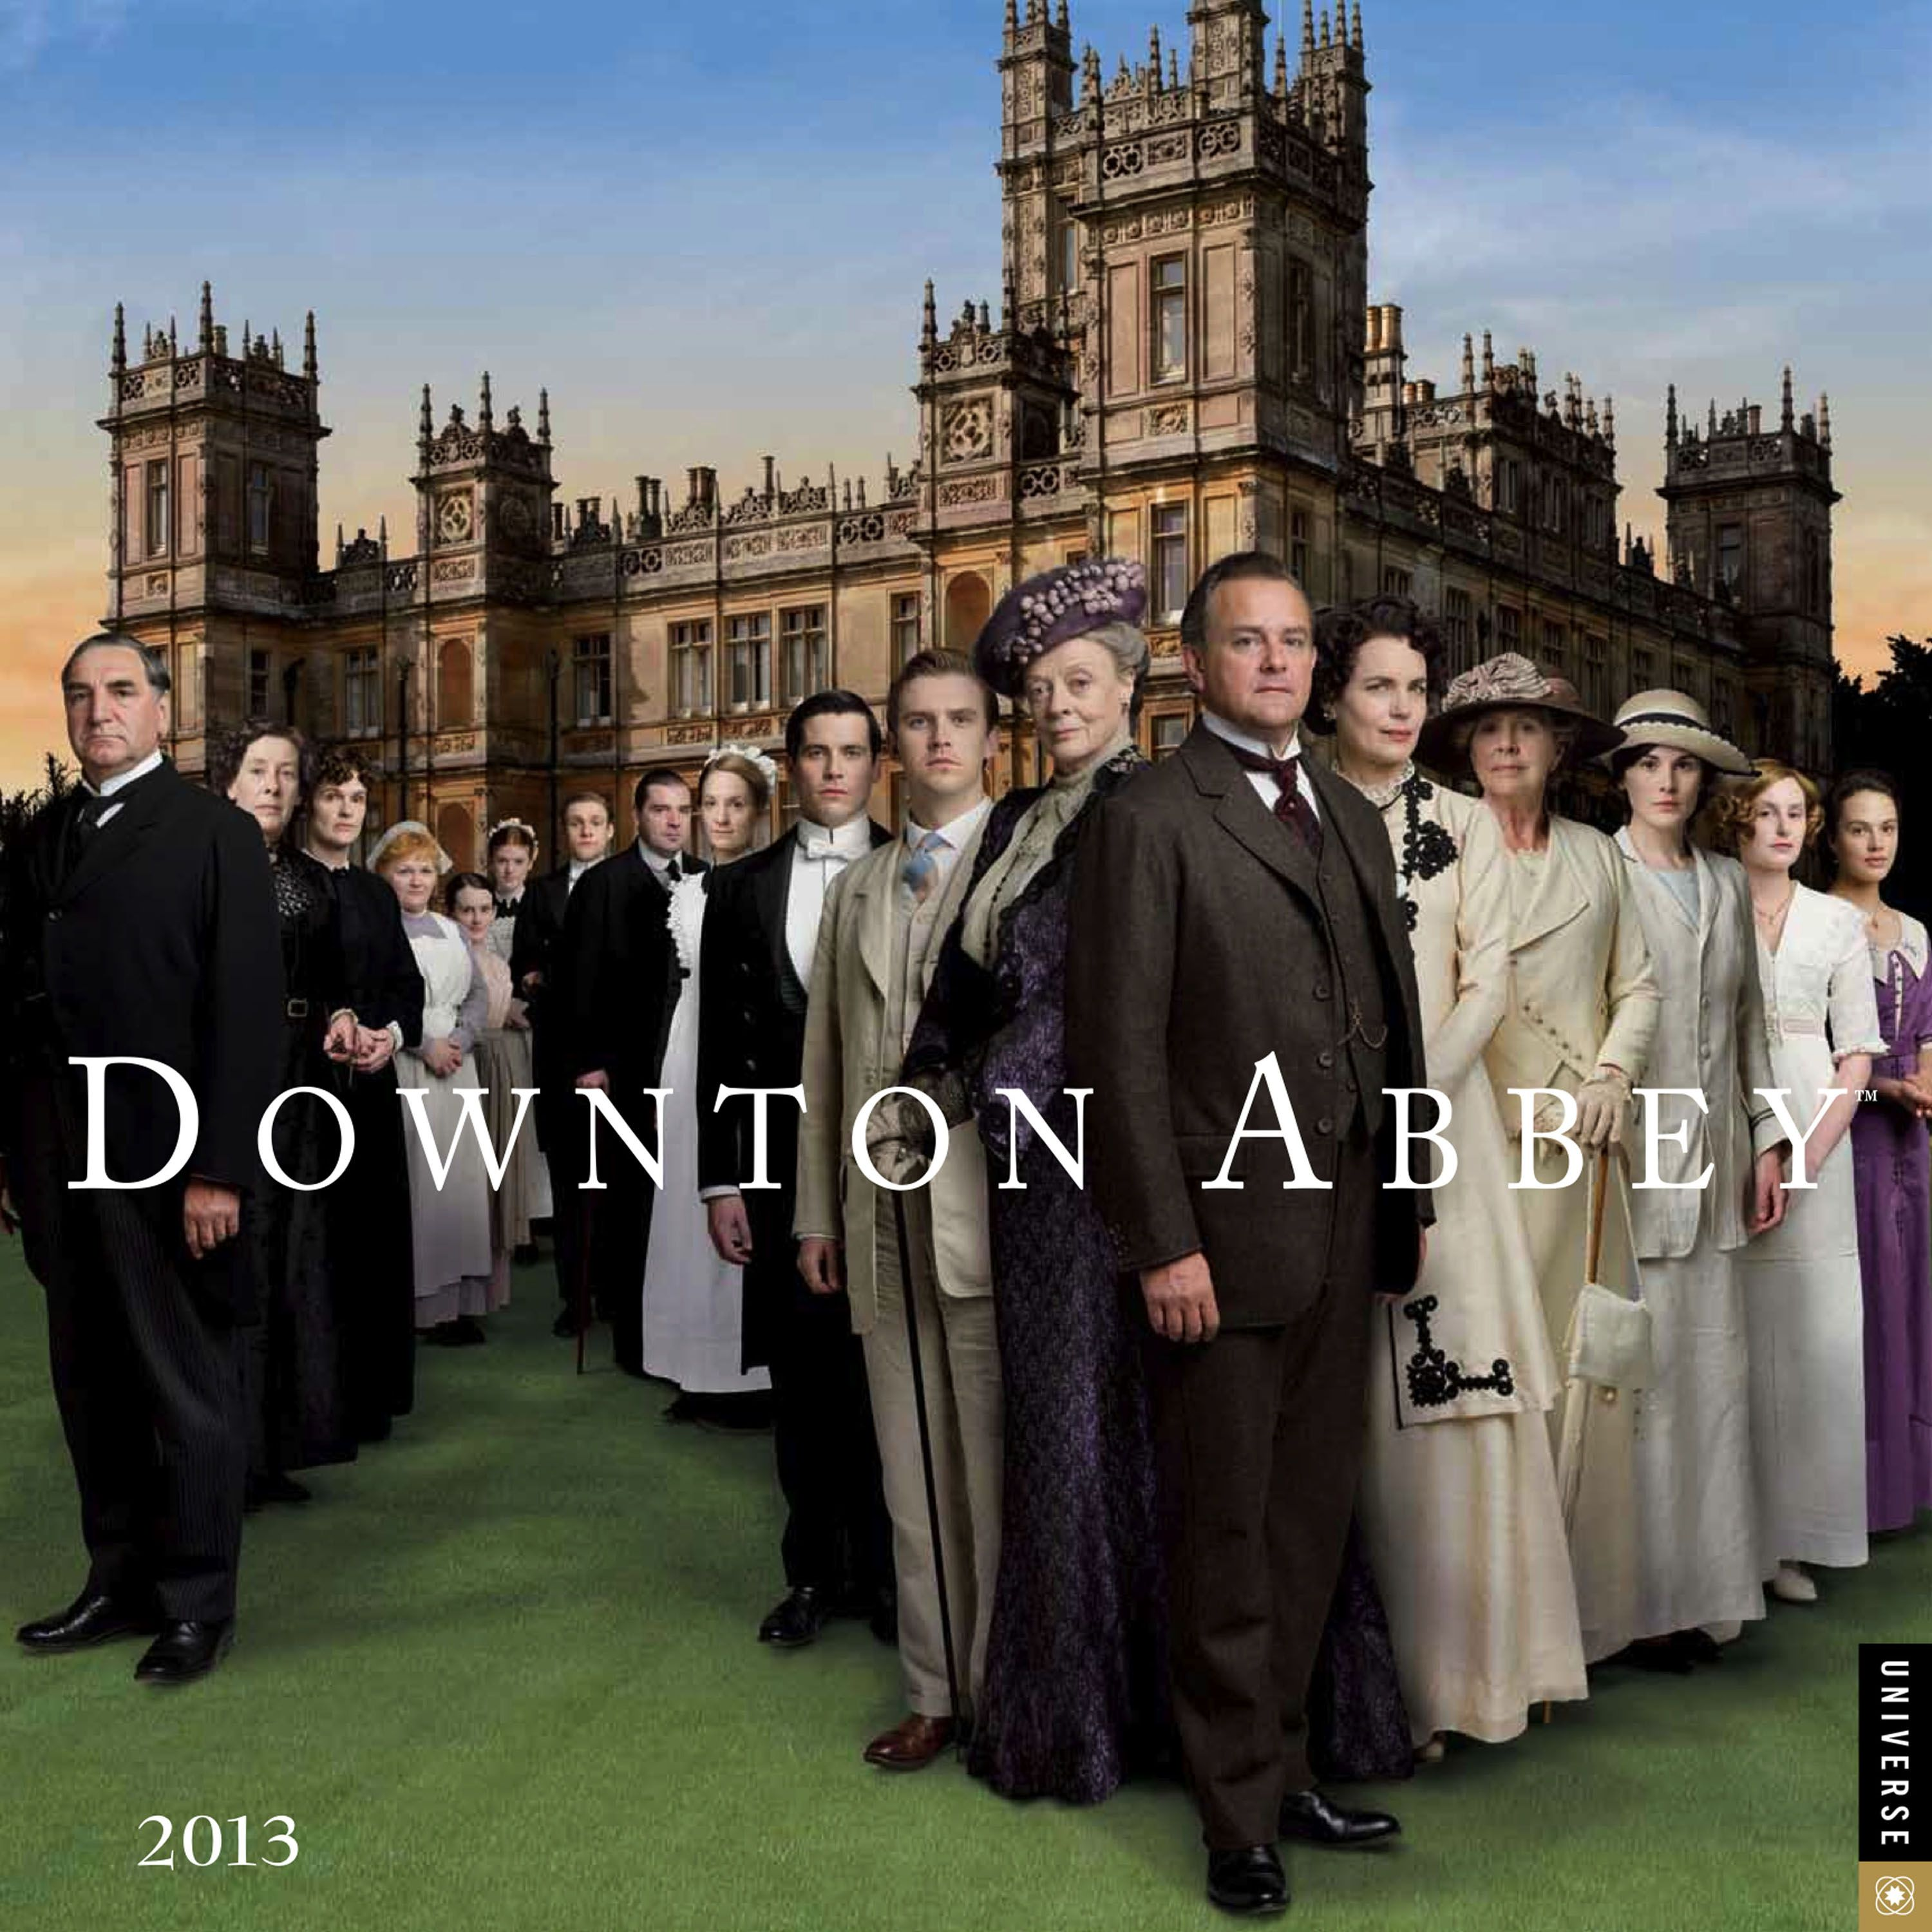 Update Netflix To End Downton Abbey Streaming As Amazon